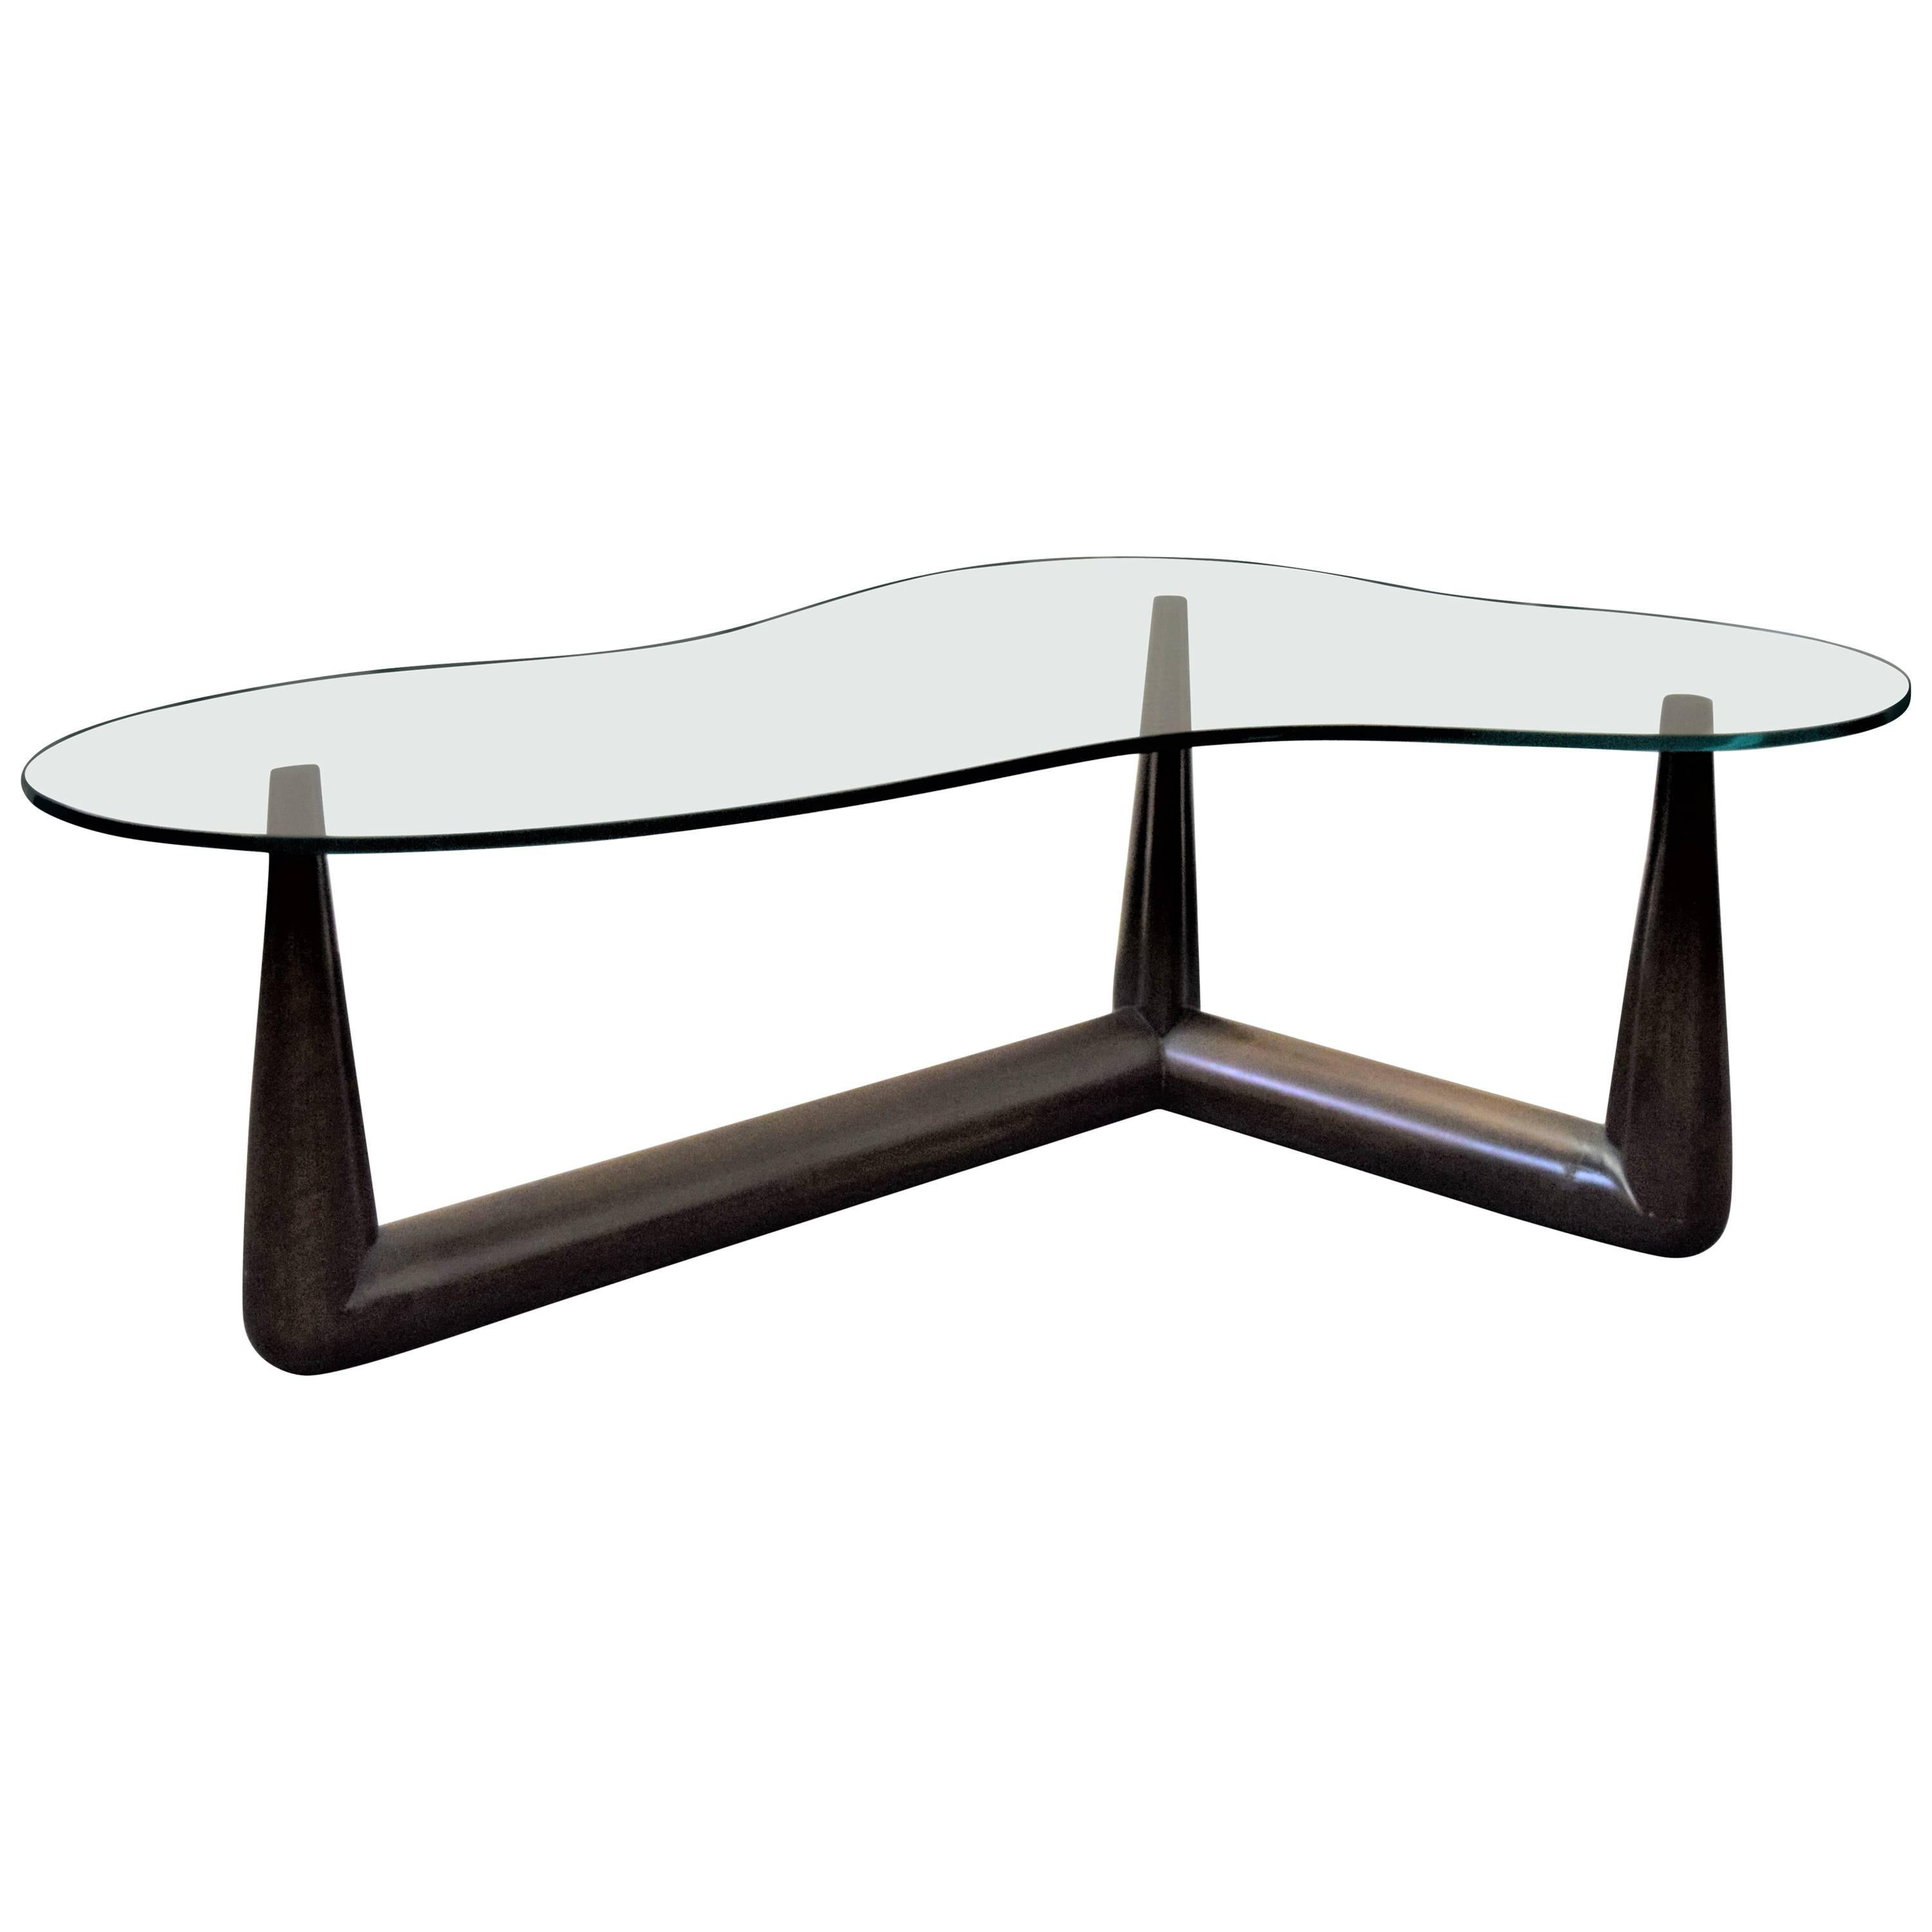 RobsjohnGibbings for Widdicomb Biomorphic Coffee Table For Sale at